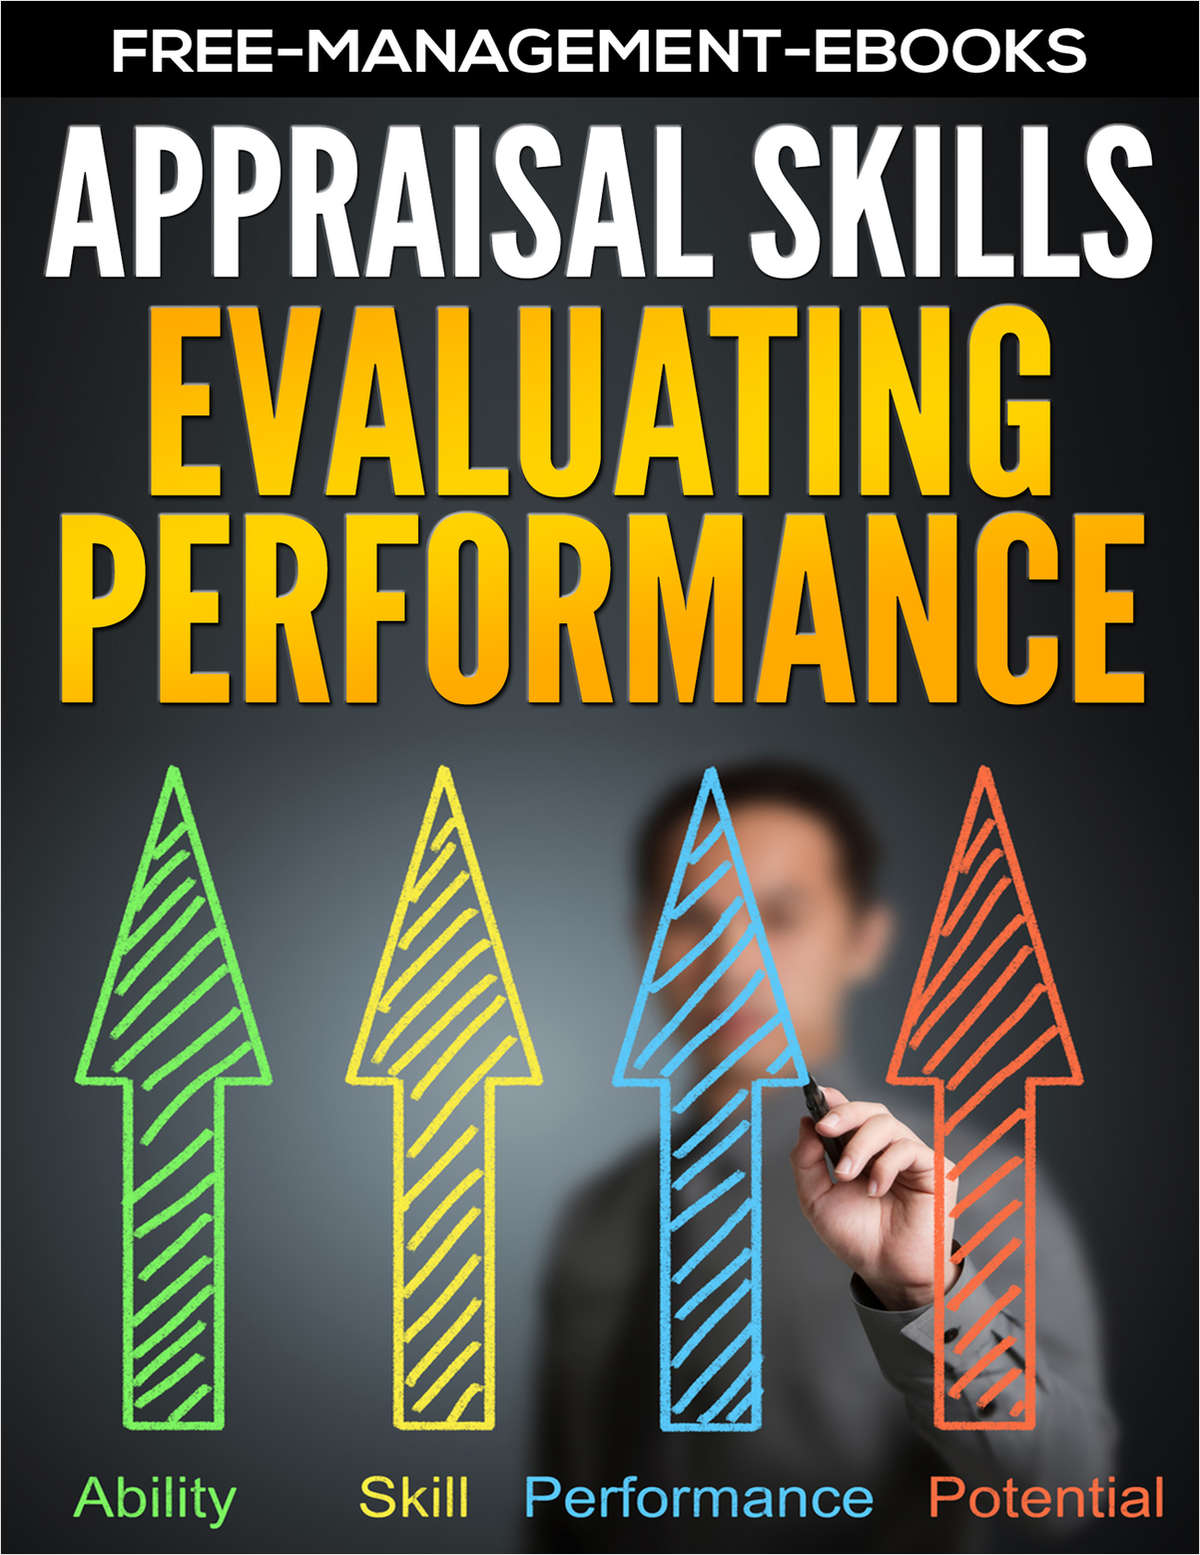 Evaluating Performance - Developing Your Appraisal Skills